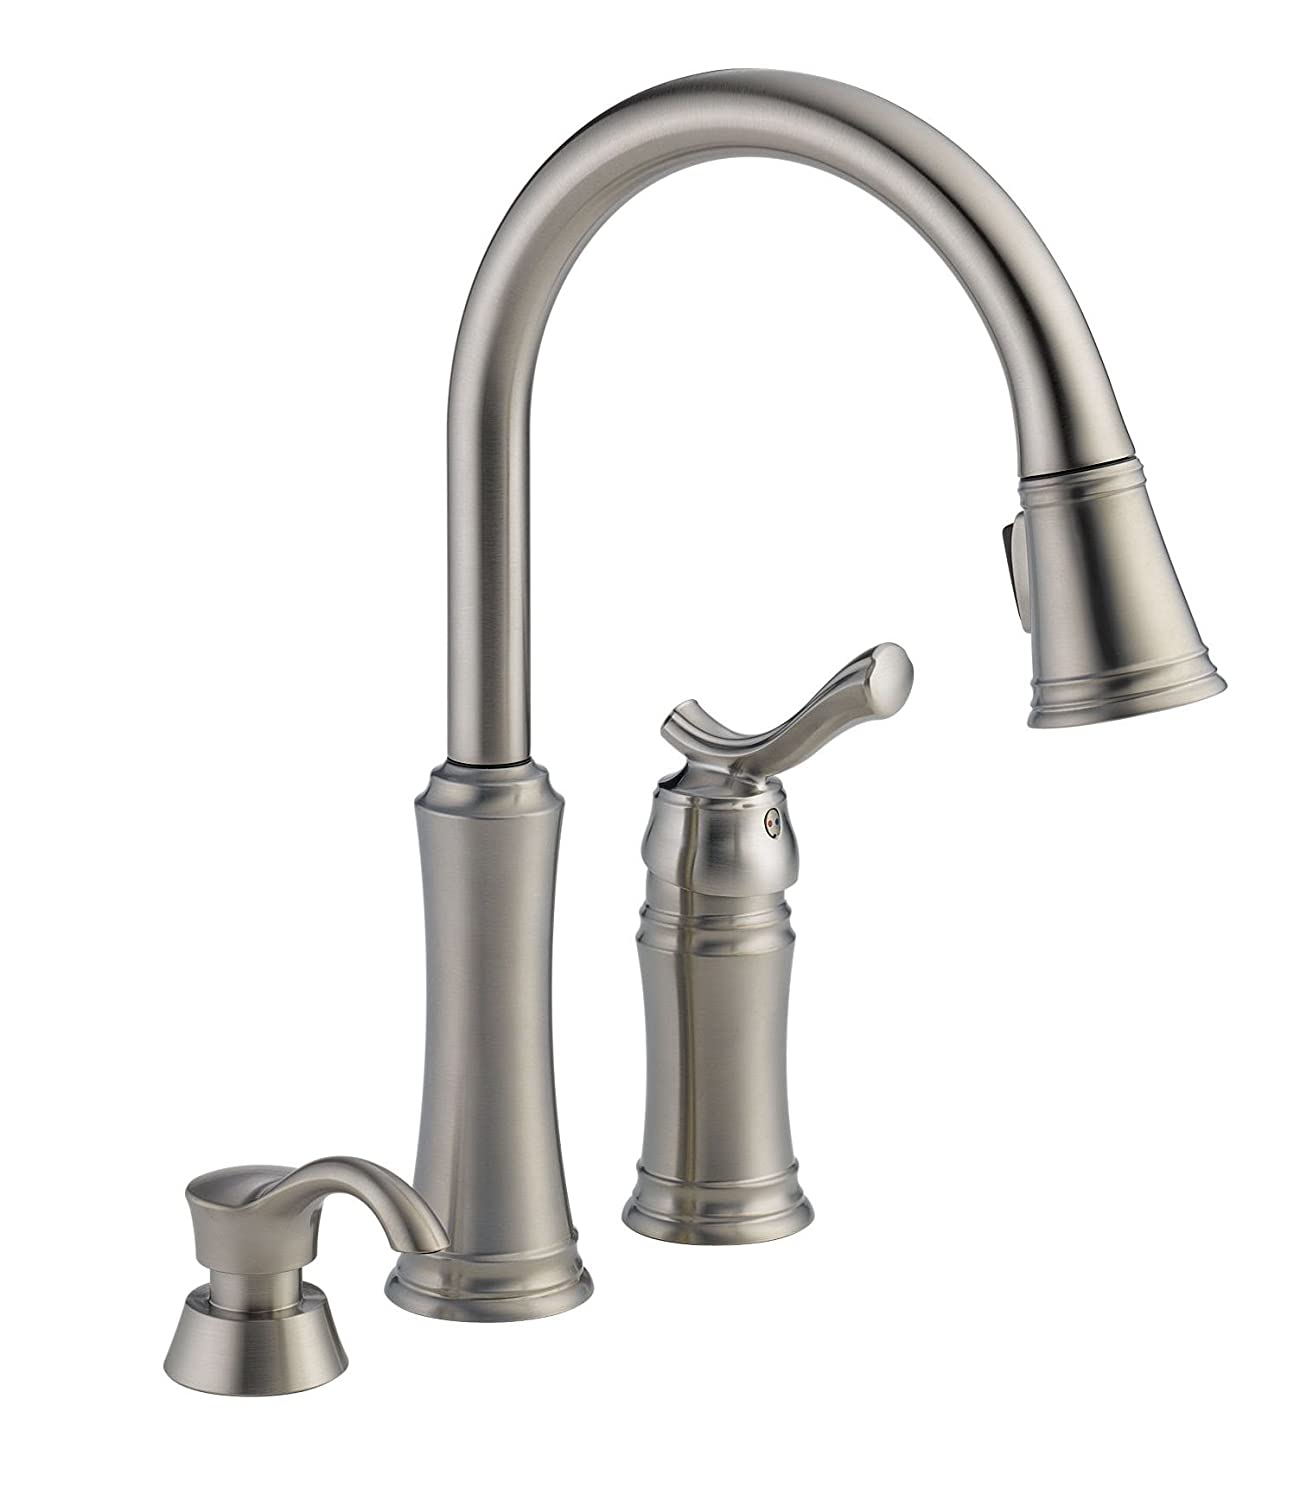 down pull arc faucets kitchens soltura handle kitchen soap dispenser high with faucet